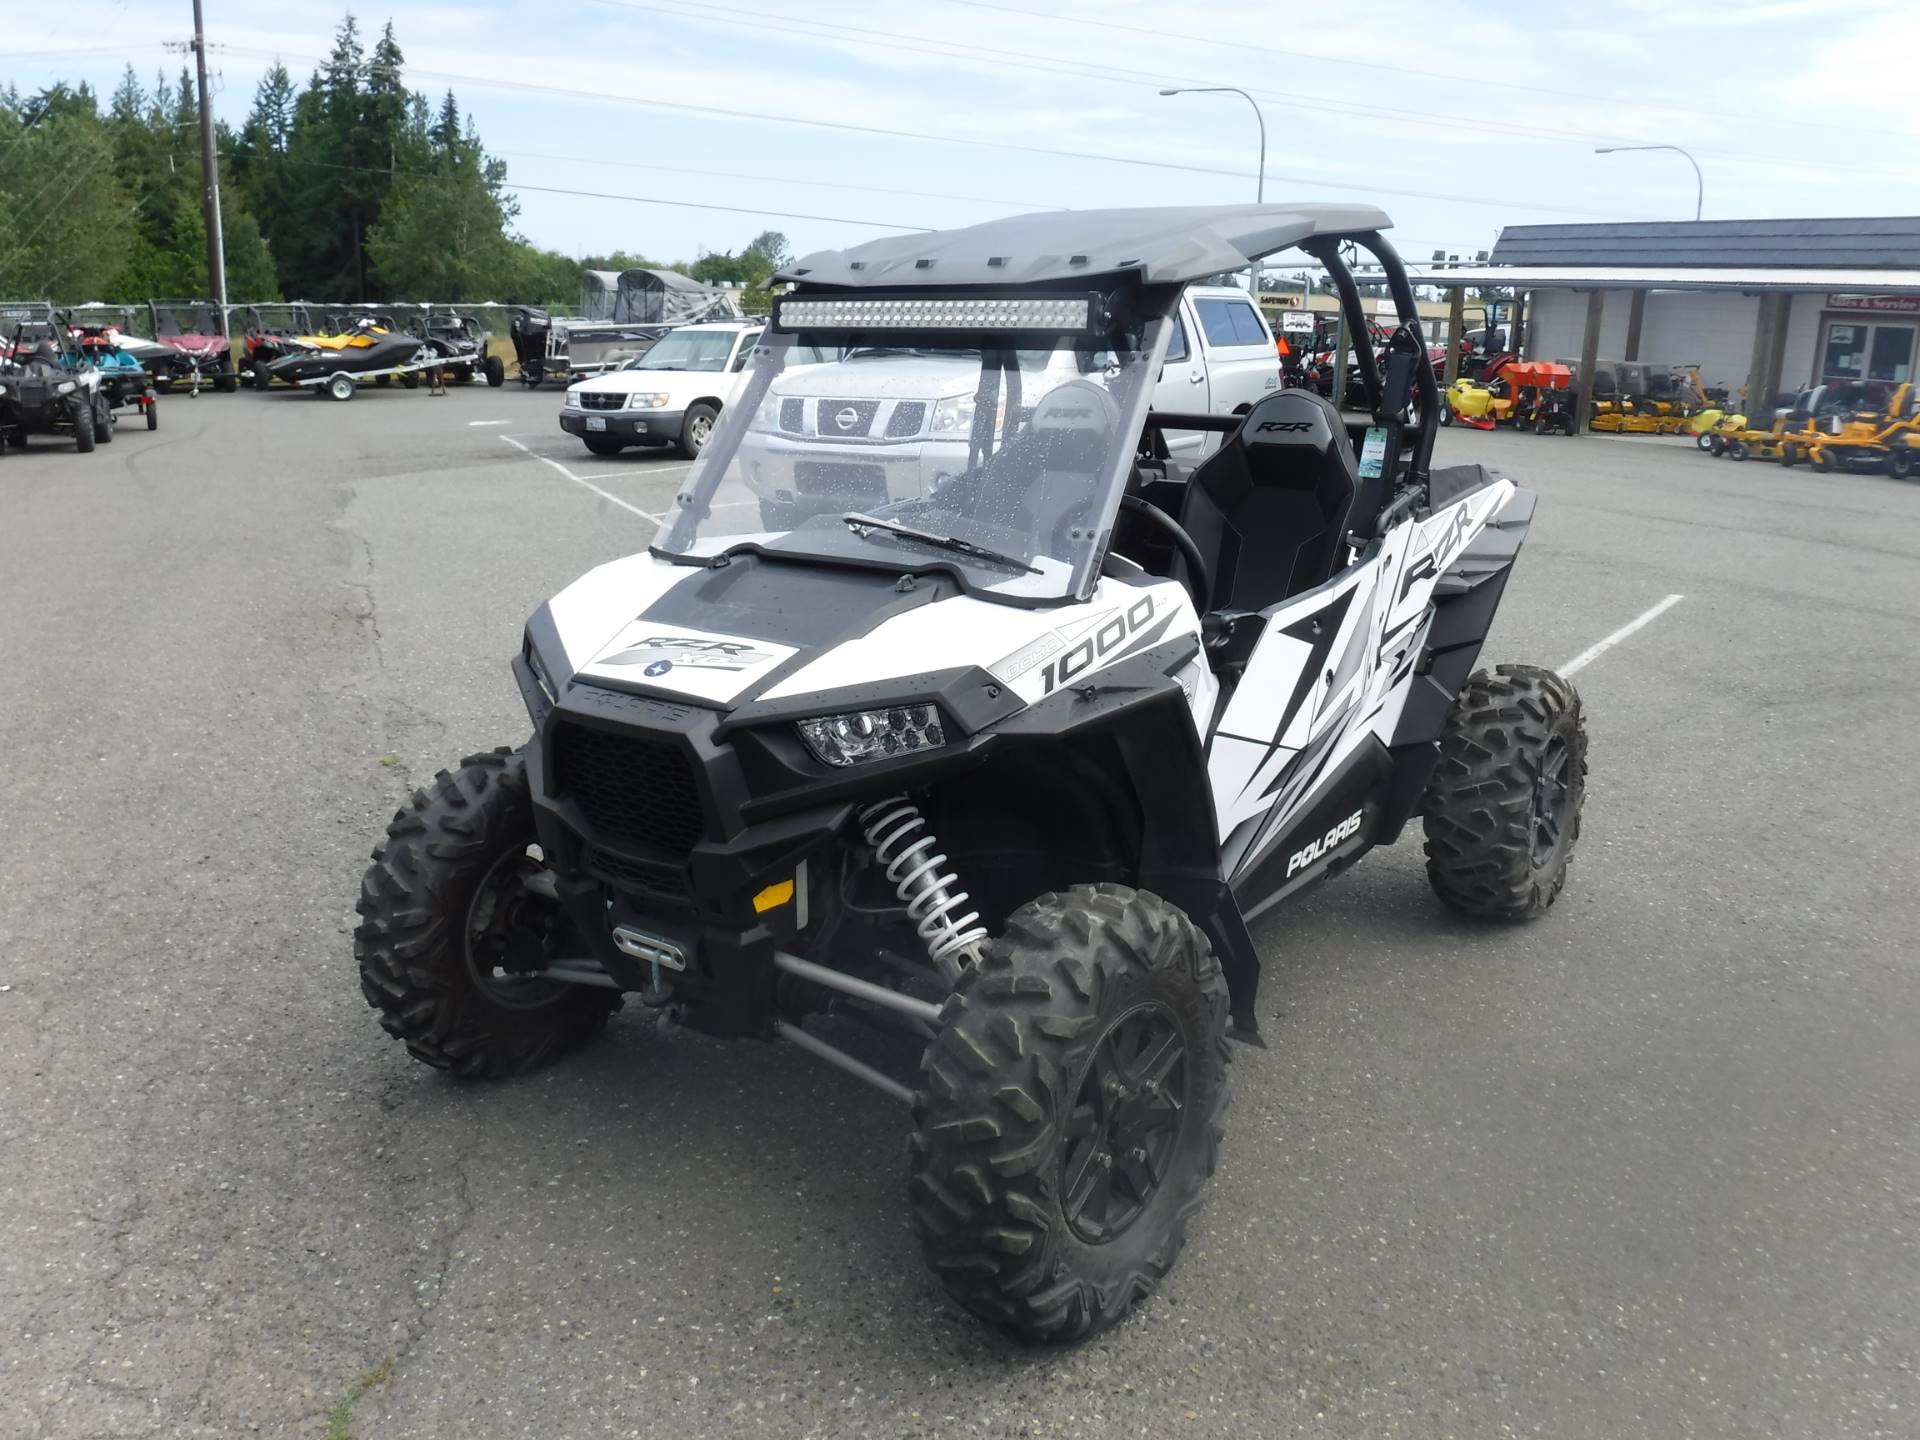 2015 Polaris RZR® XP 1000 EPS in Port Angeles, Washington - Photo 2